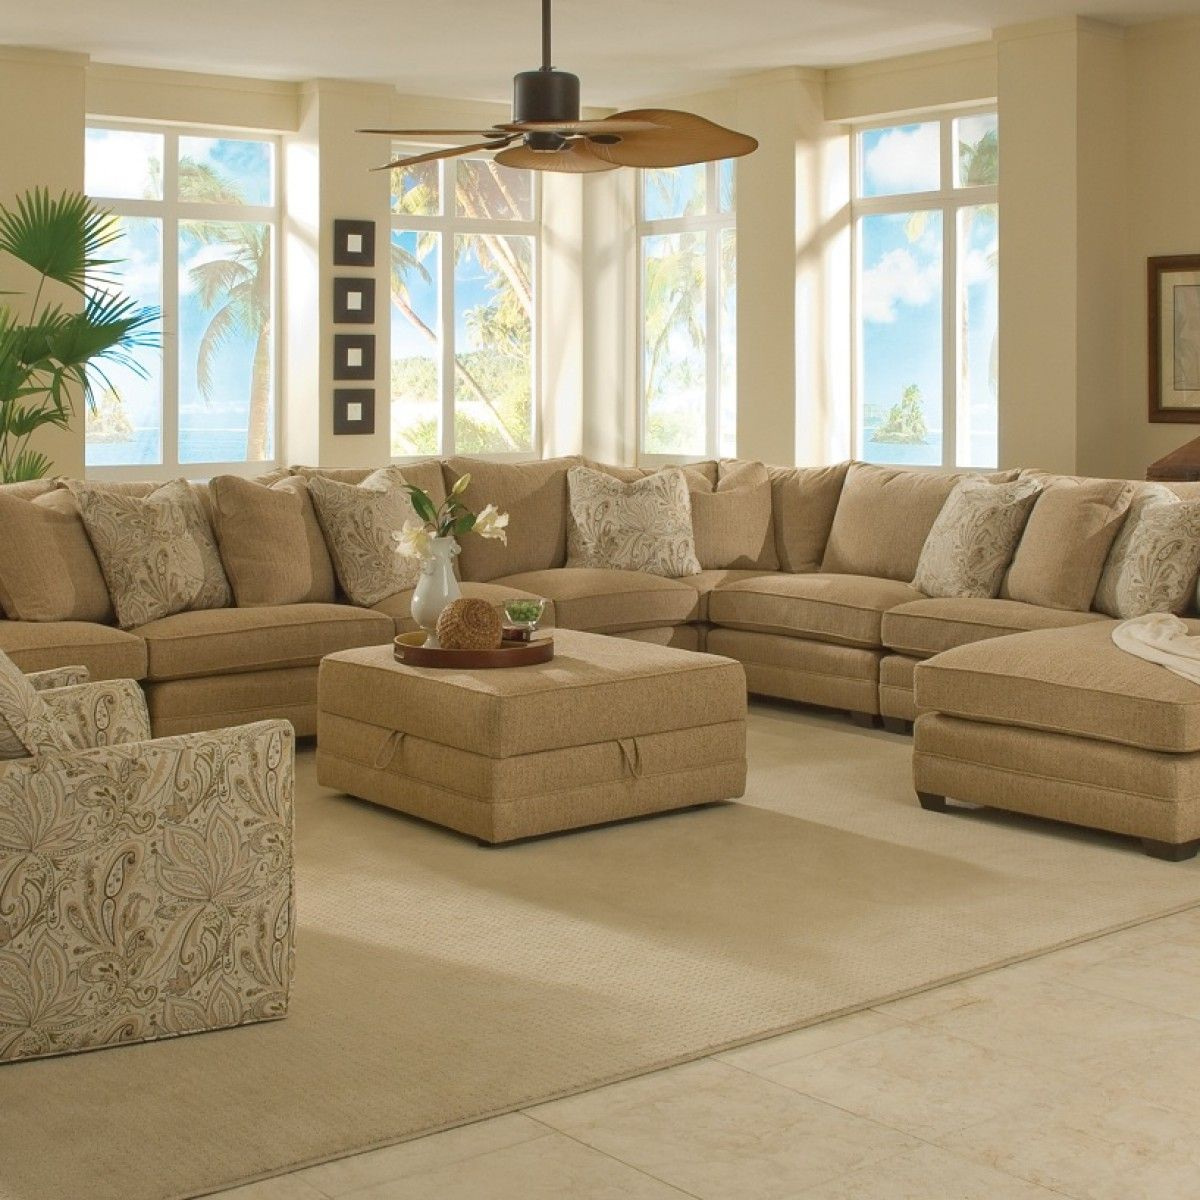 Magnificent Large Sectional Sofas | Family Room in 2019 | Large ...